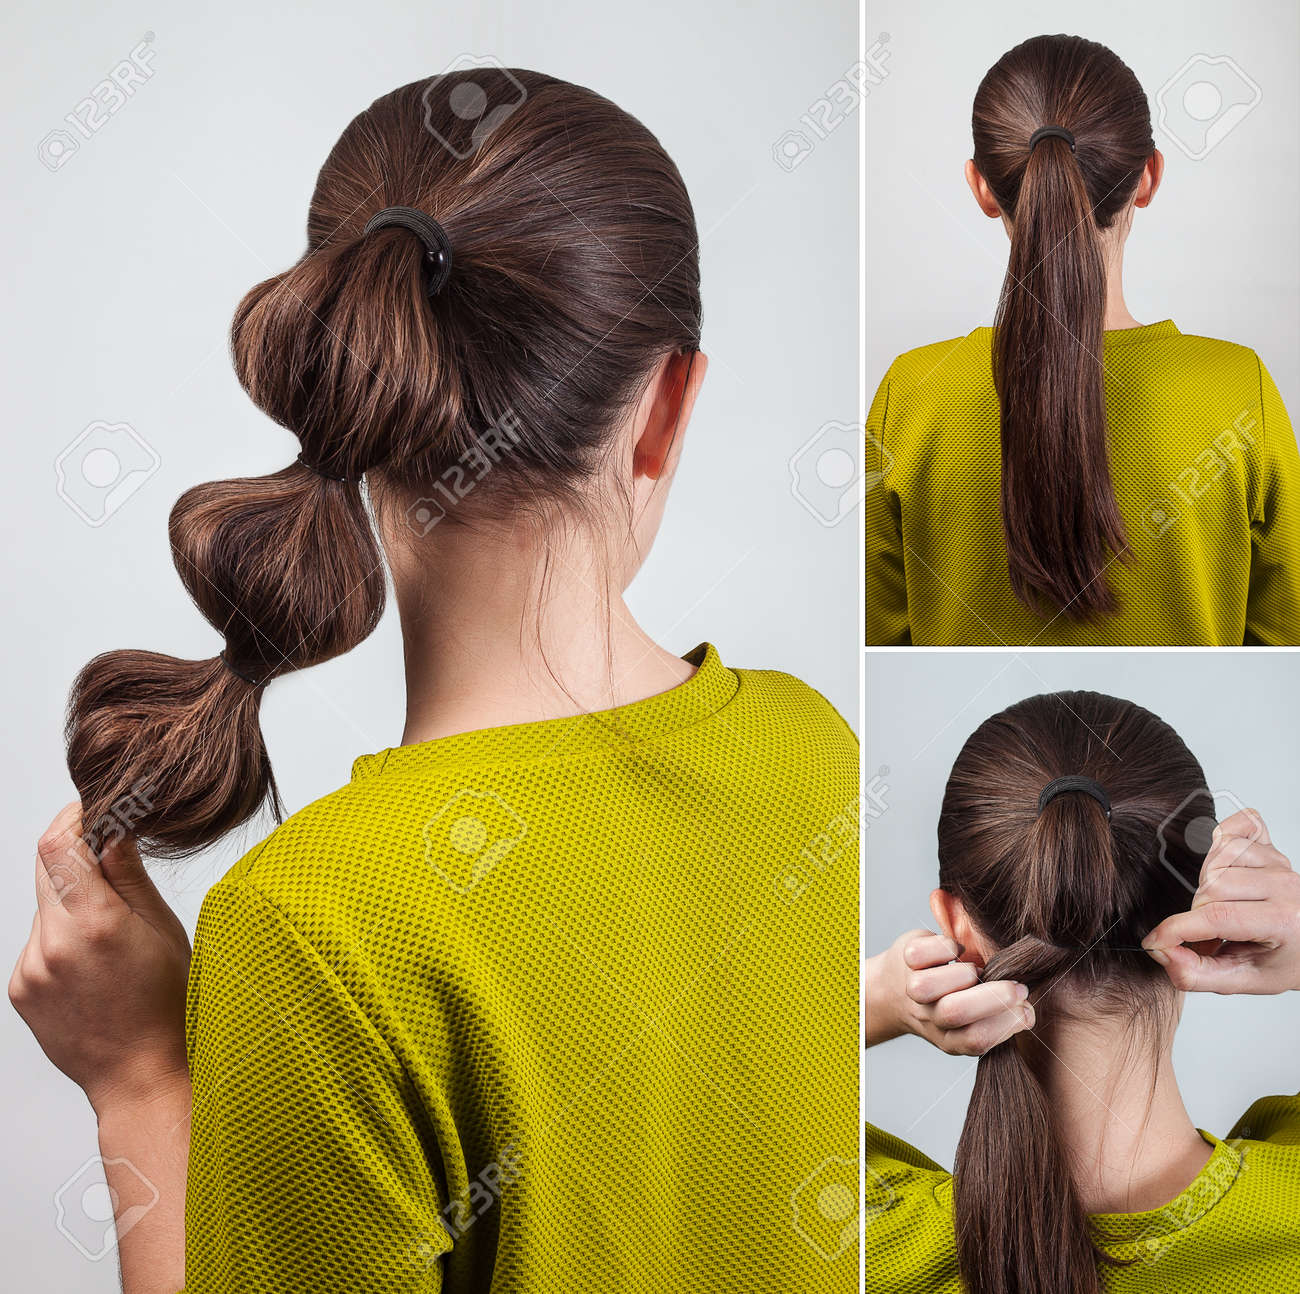 Simple Casual Hairstyle Pony Tail With Scrunchy Tutorial Stock Photo